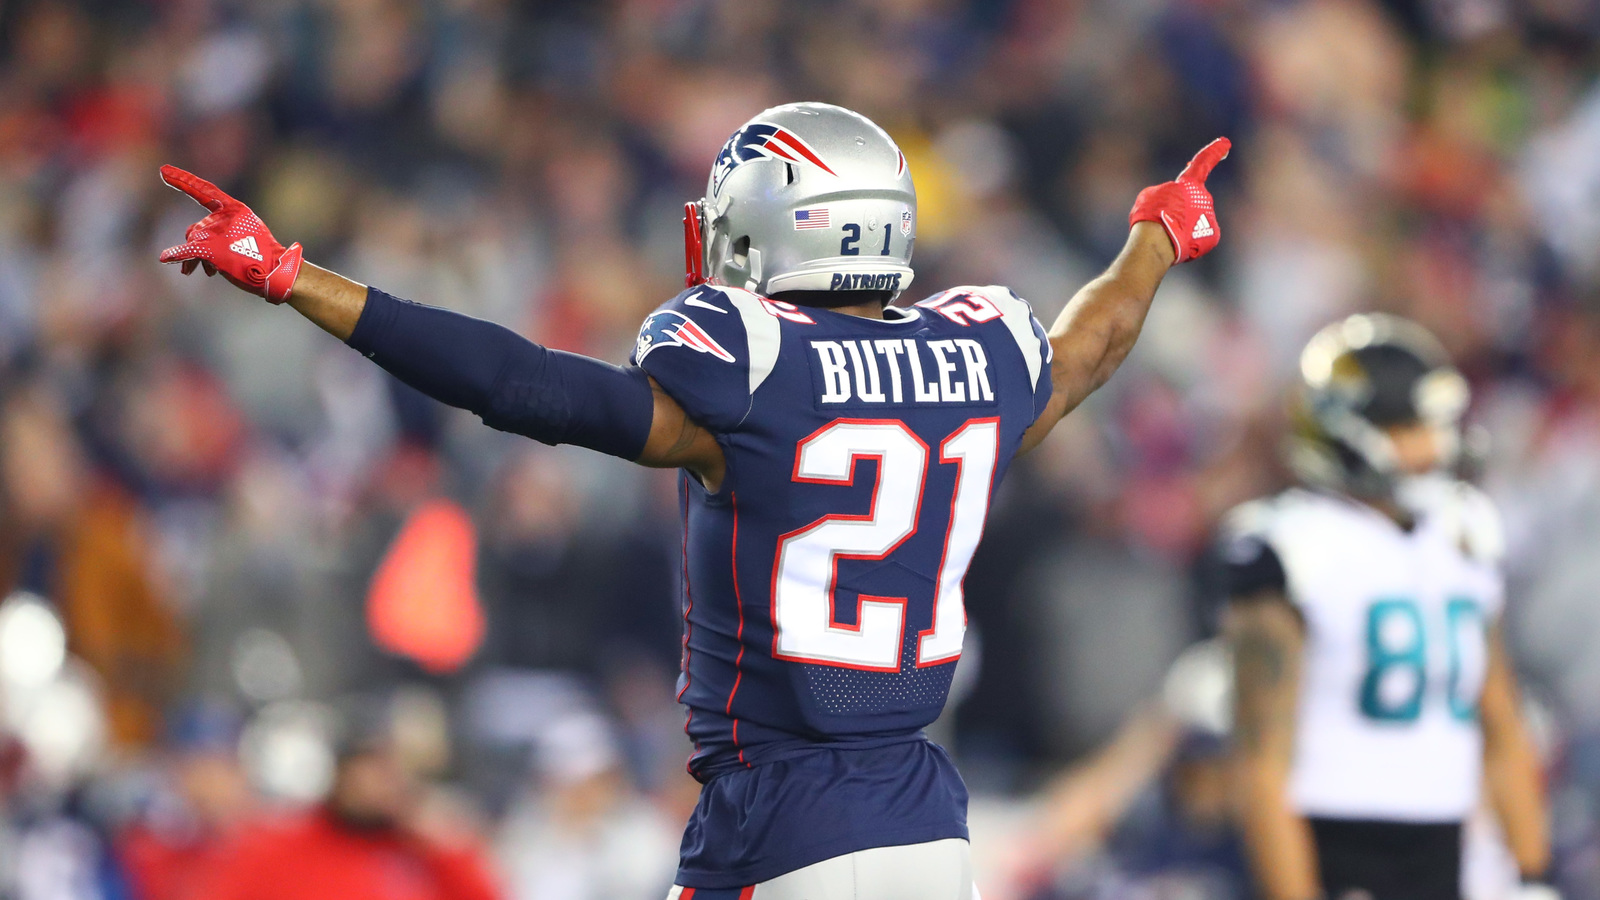 Malcom Butler says Patriots 'probably' win Super Bowl LII if he plays